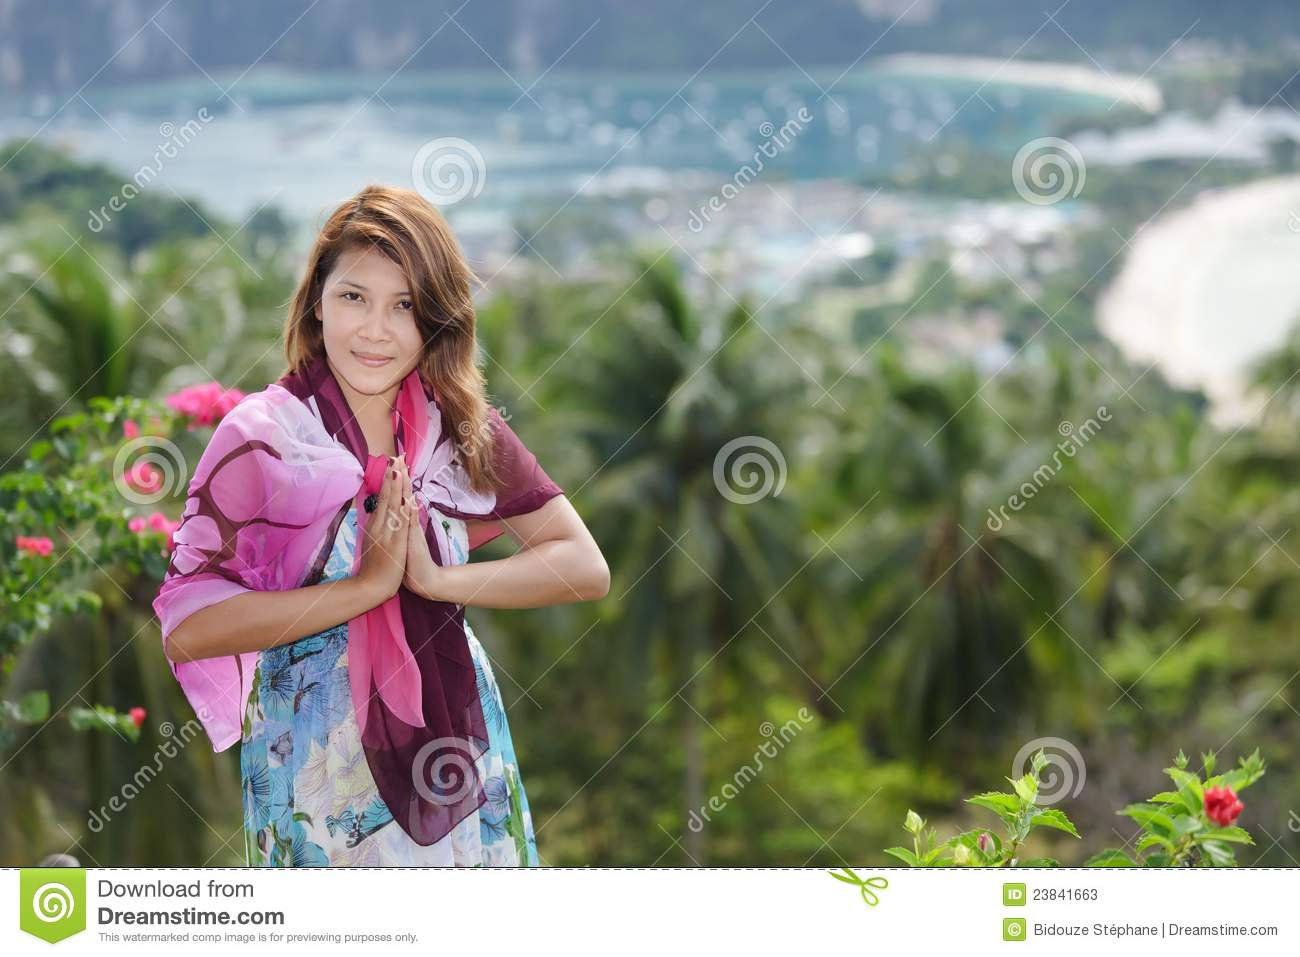 Thai greetings stock image image of girl forest person 23841663 download comp m4hsunfo